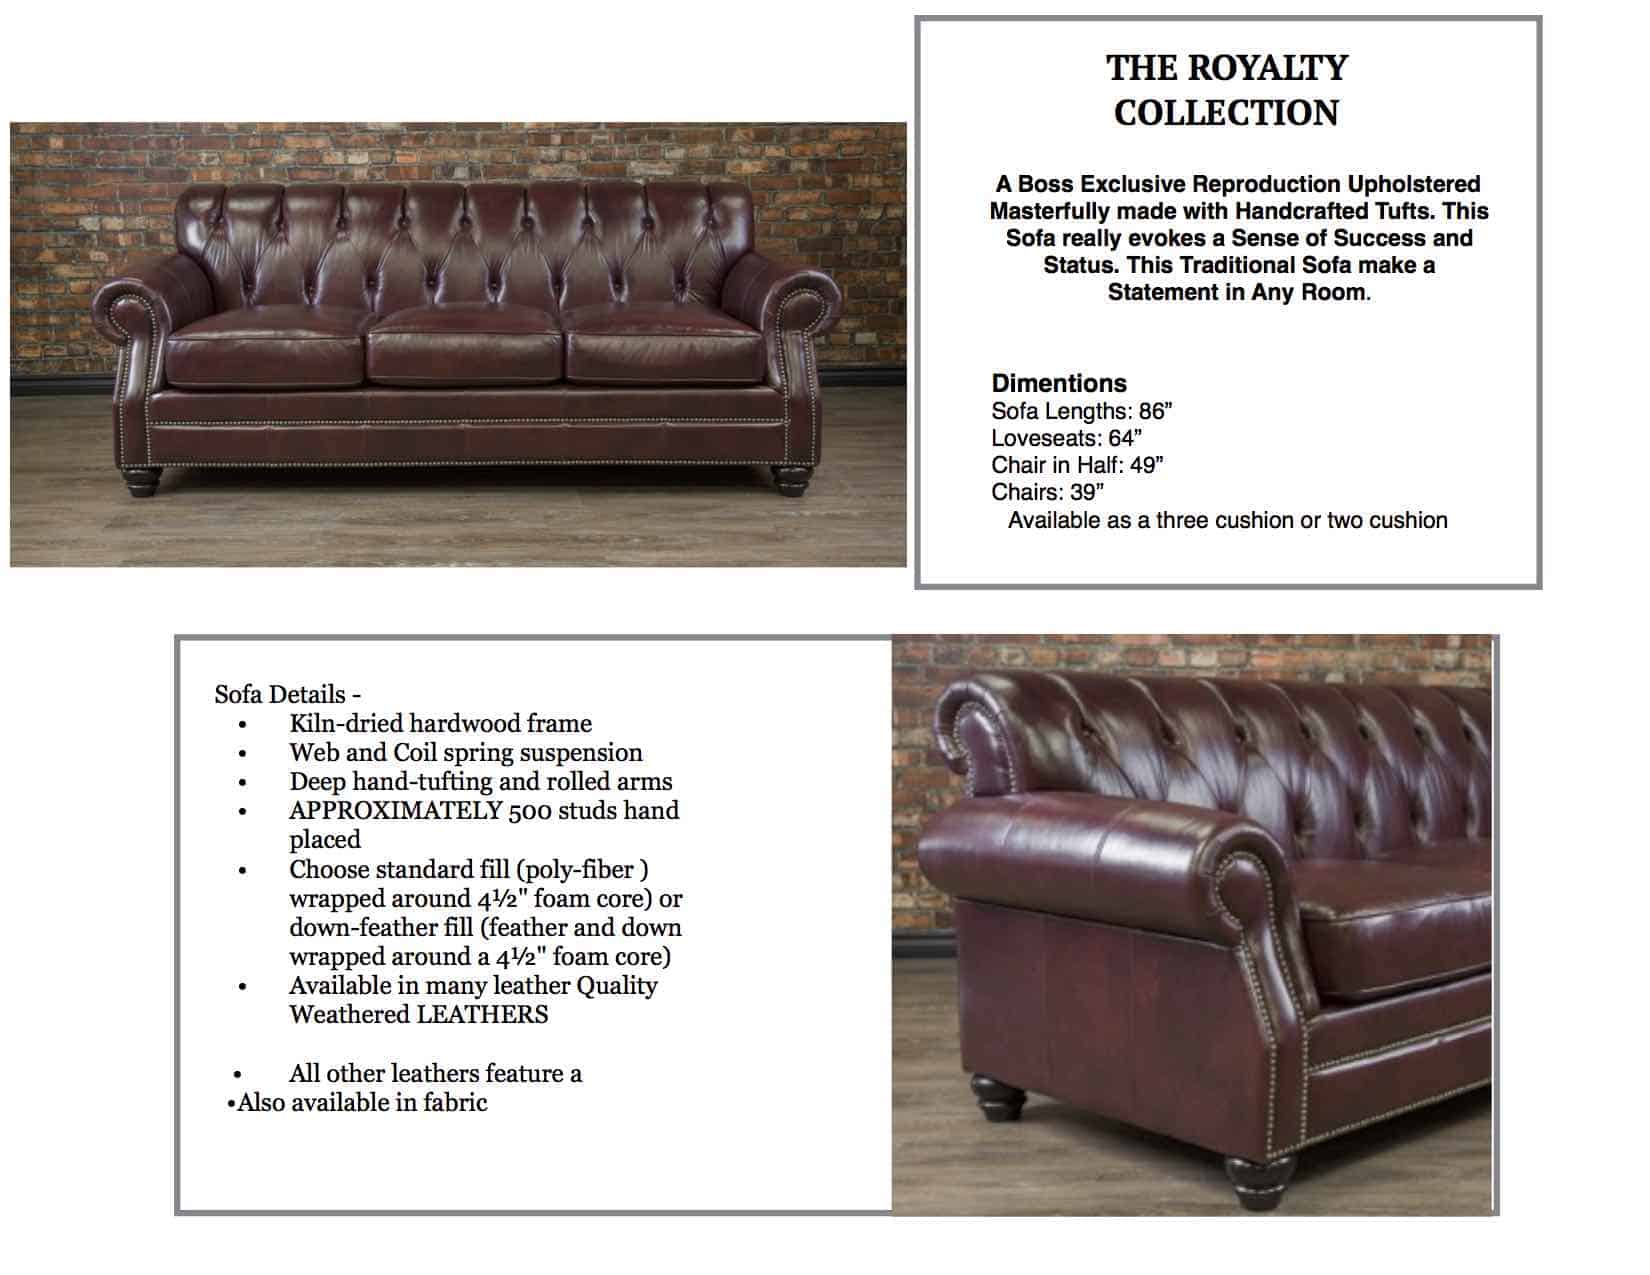 The Royalty Leather Sofa